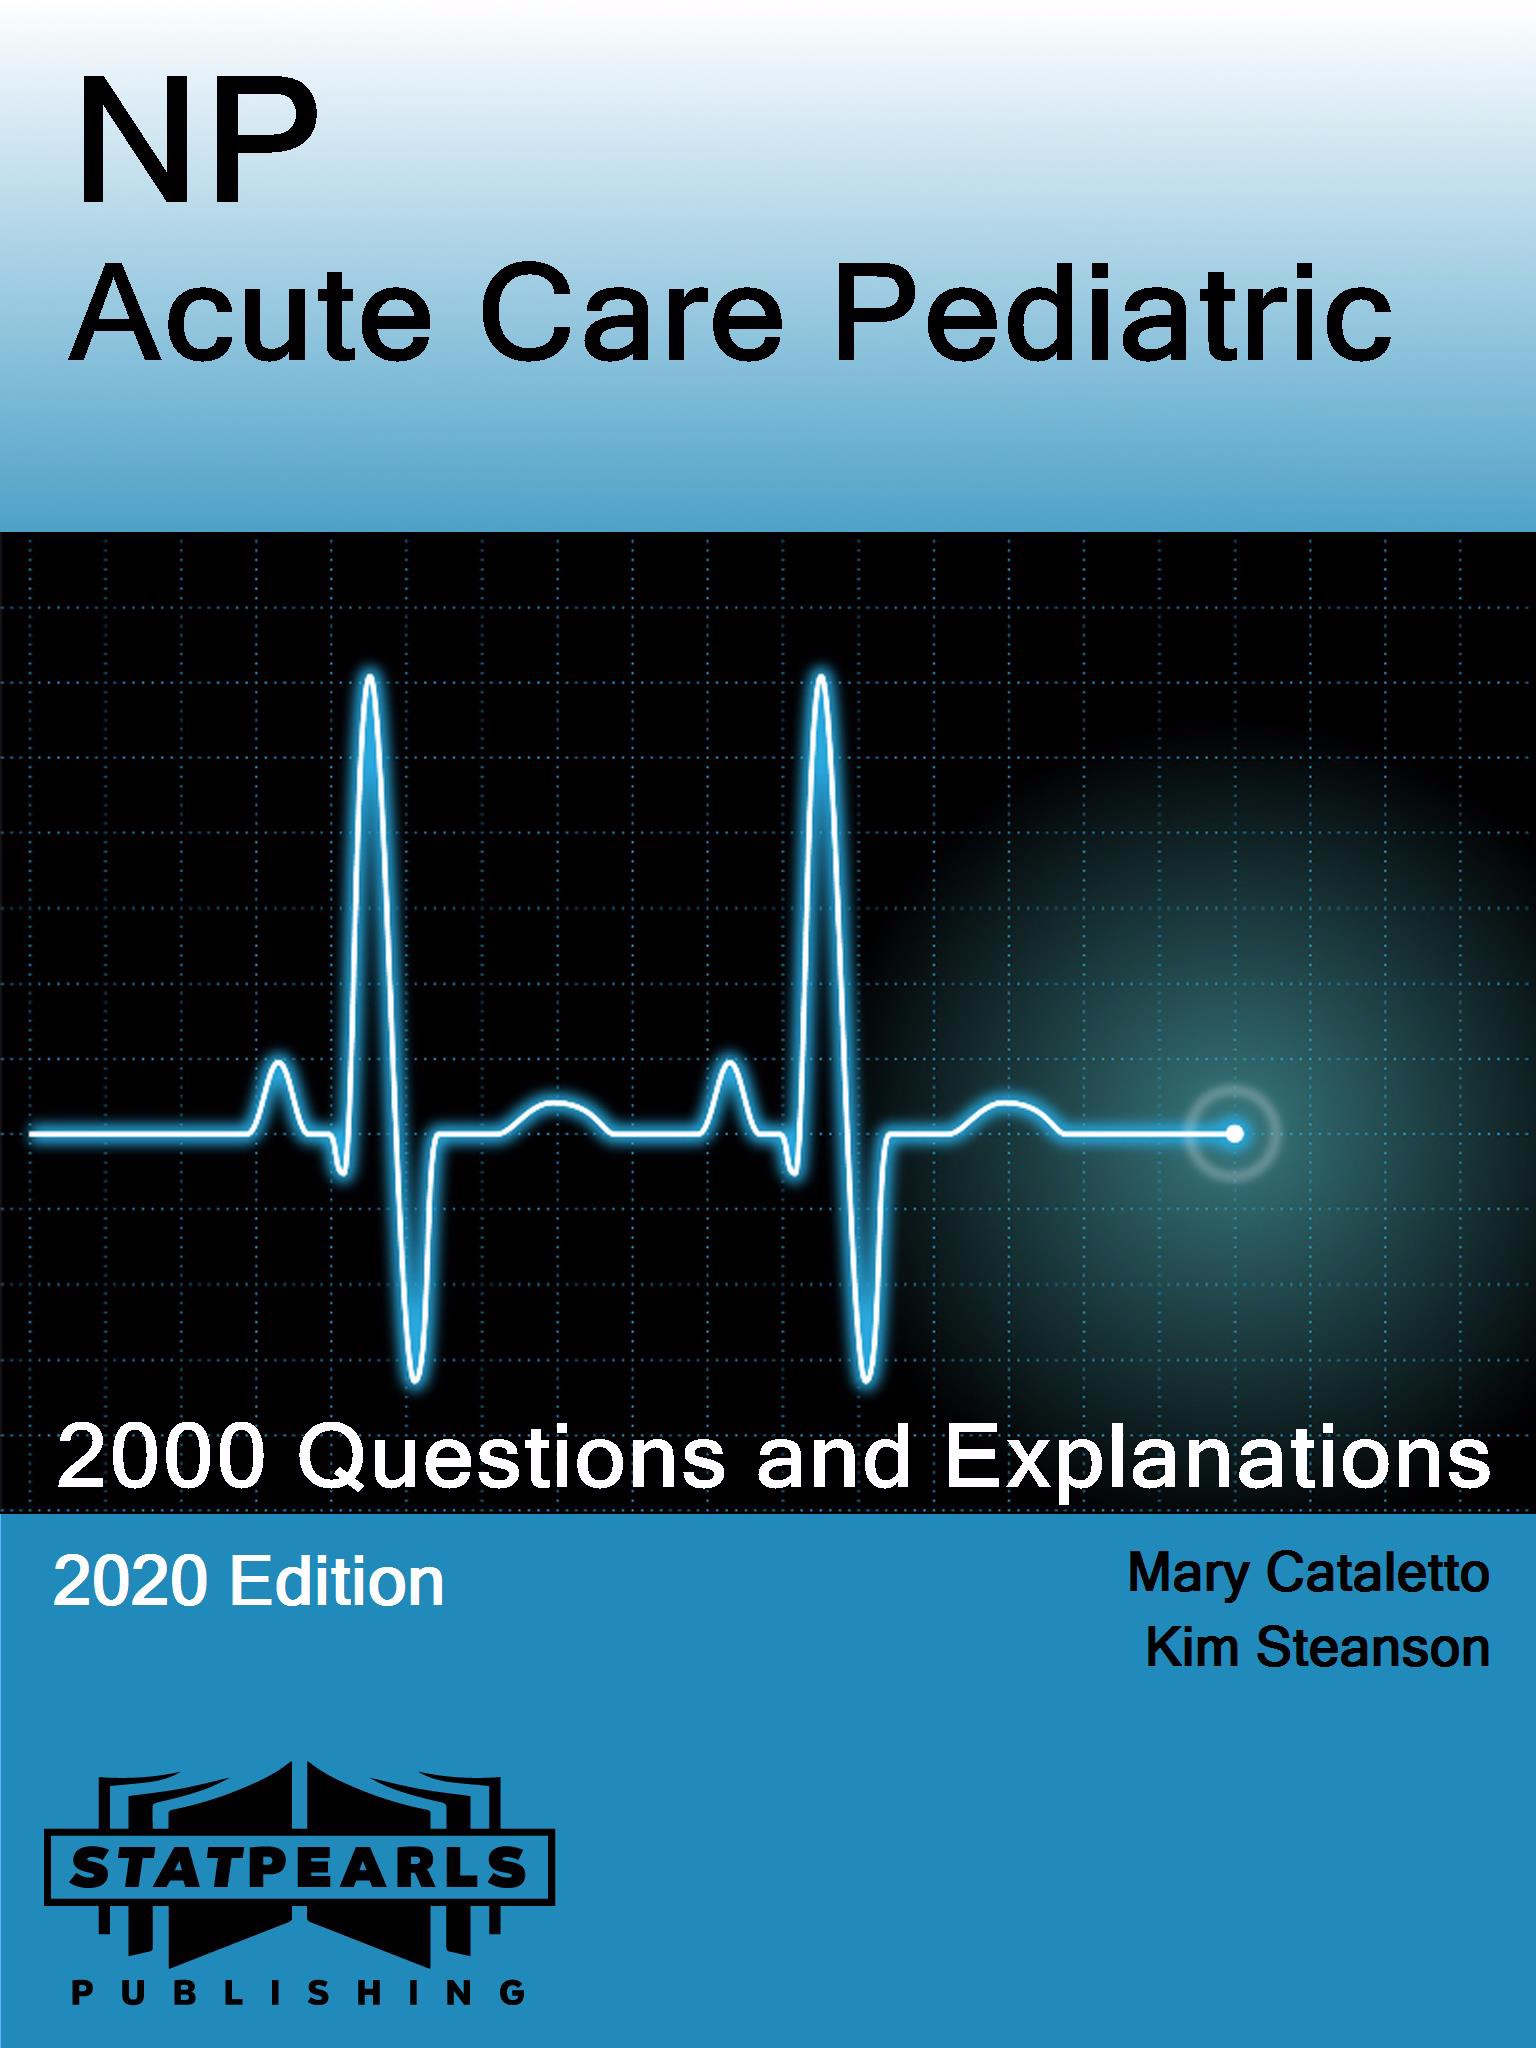 NP Acute Care Pediatric